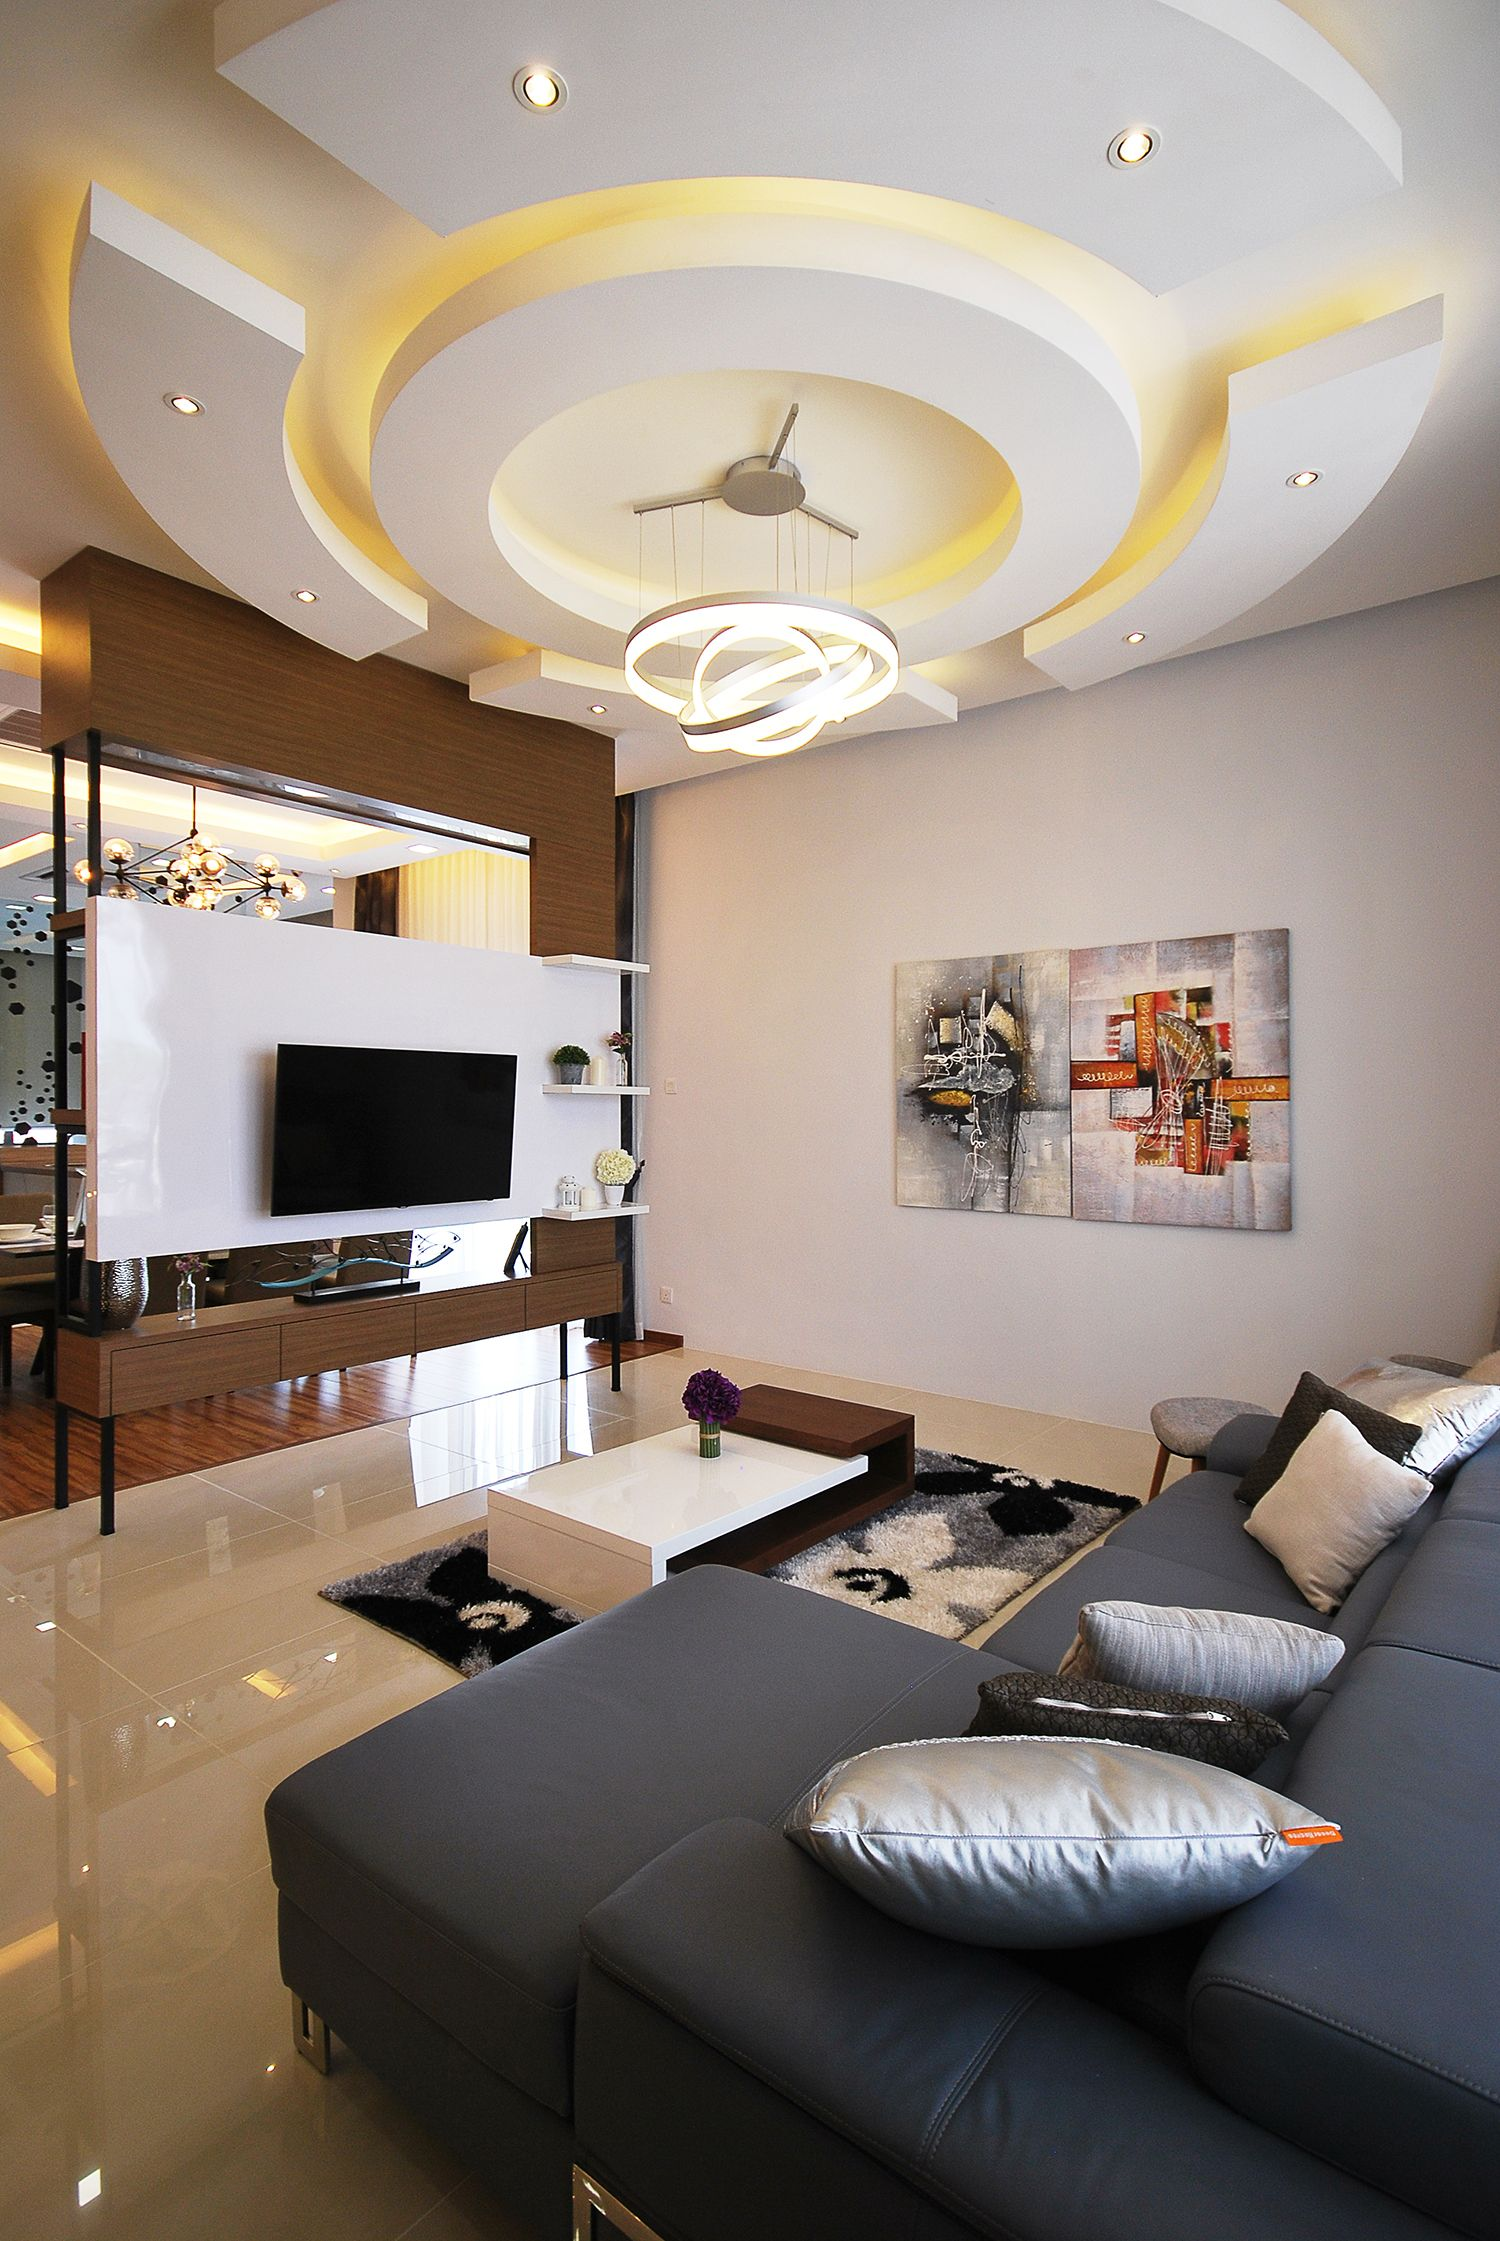 65 Great Modern Interior Design Ideas To Make Your Living Room Look Beautiful Hoomdesign 6: 70 Living Room Design Ideas To Welcome You Home